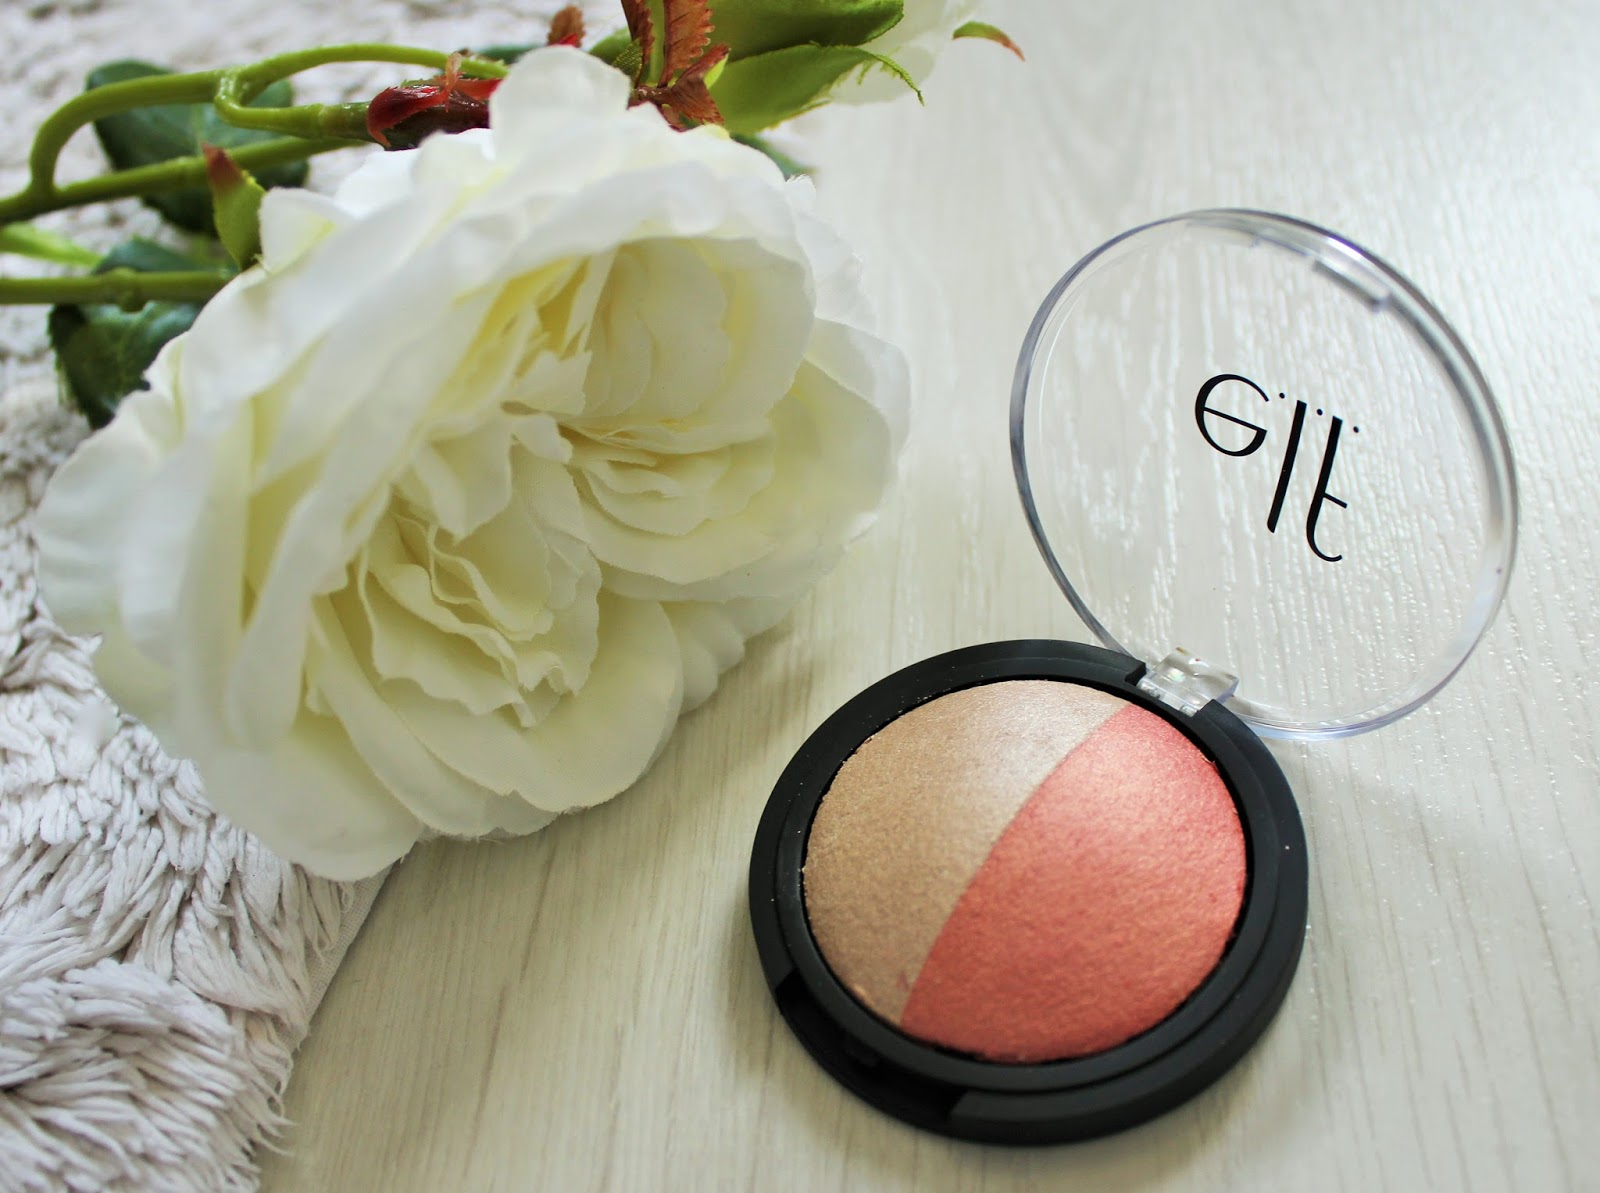 E.l.f. Cosmetics 9 - Baked Blush And Highlight In Rose Gold